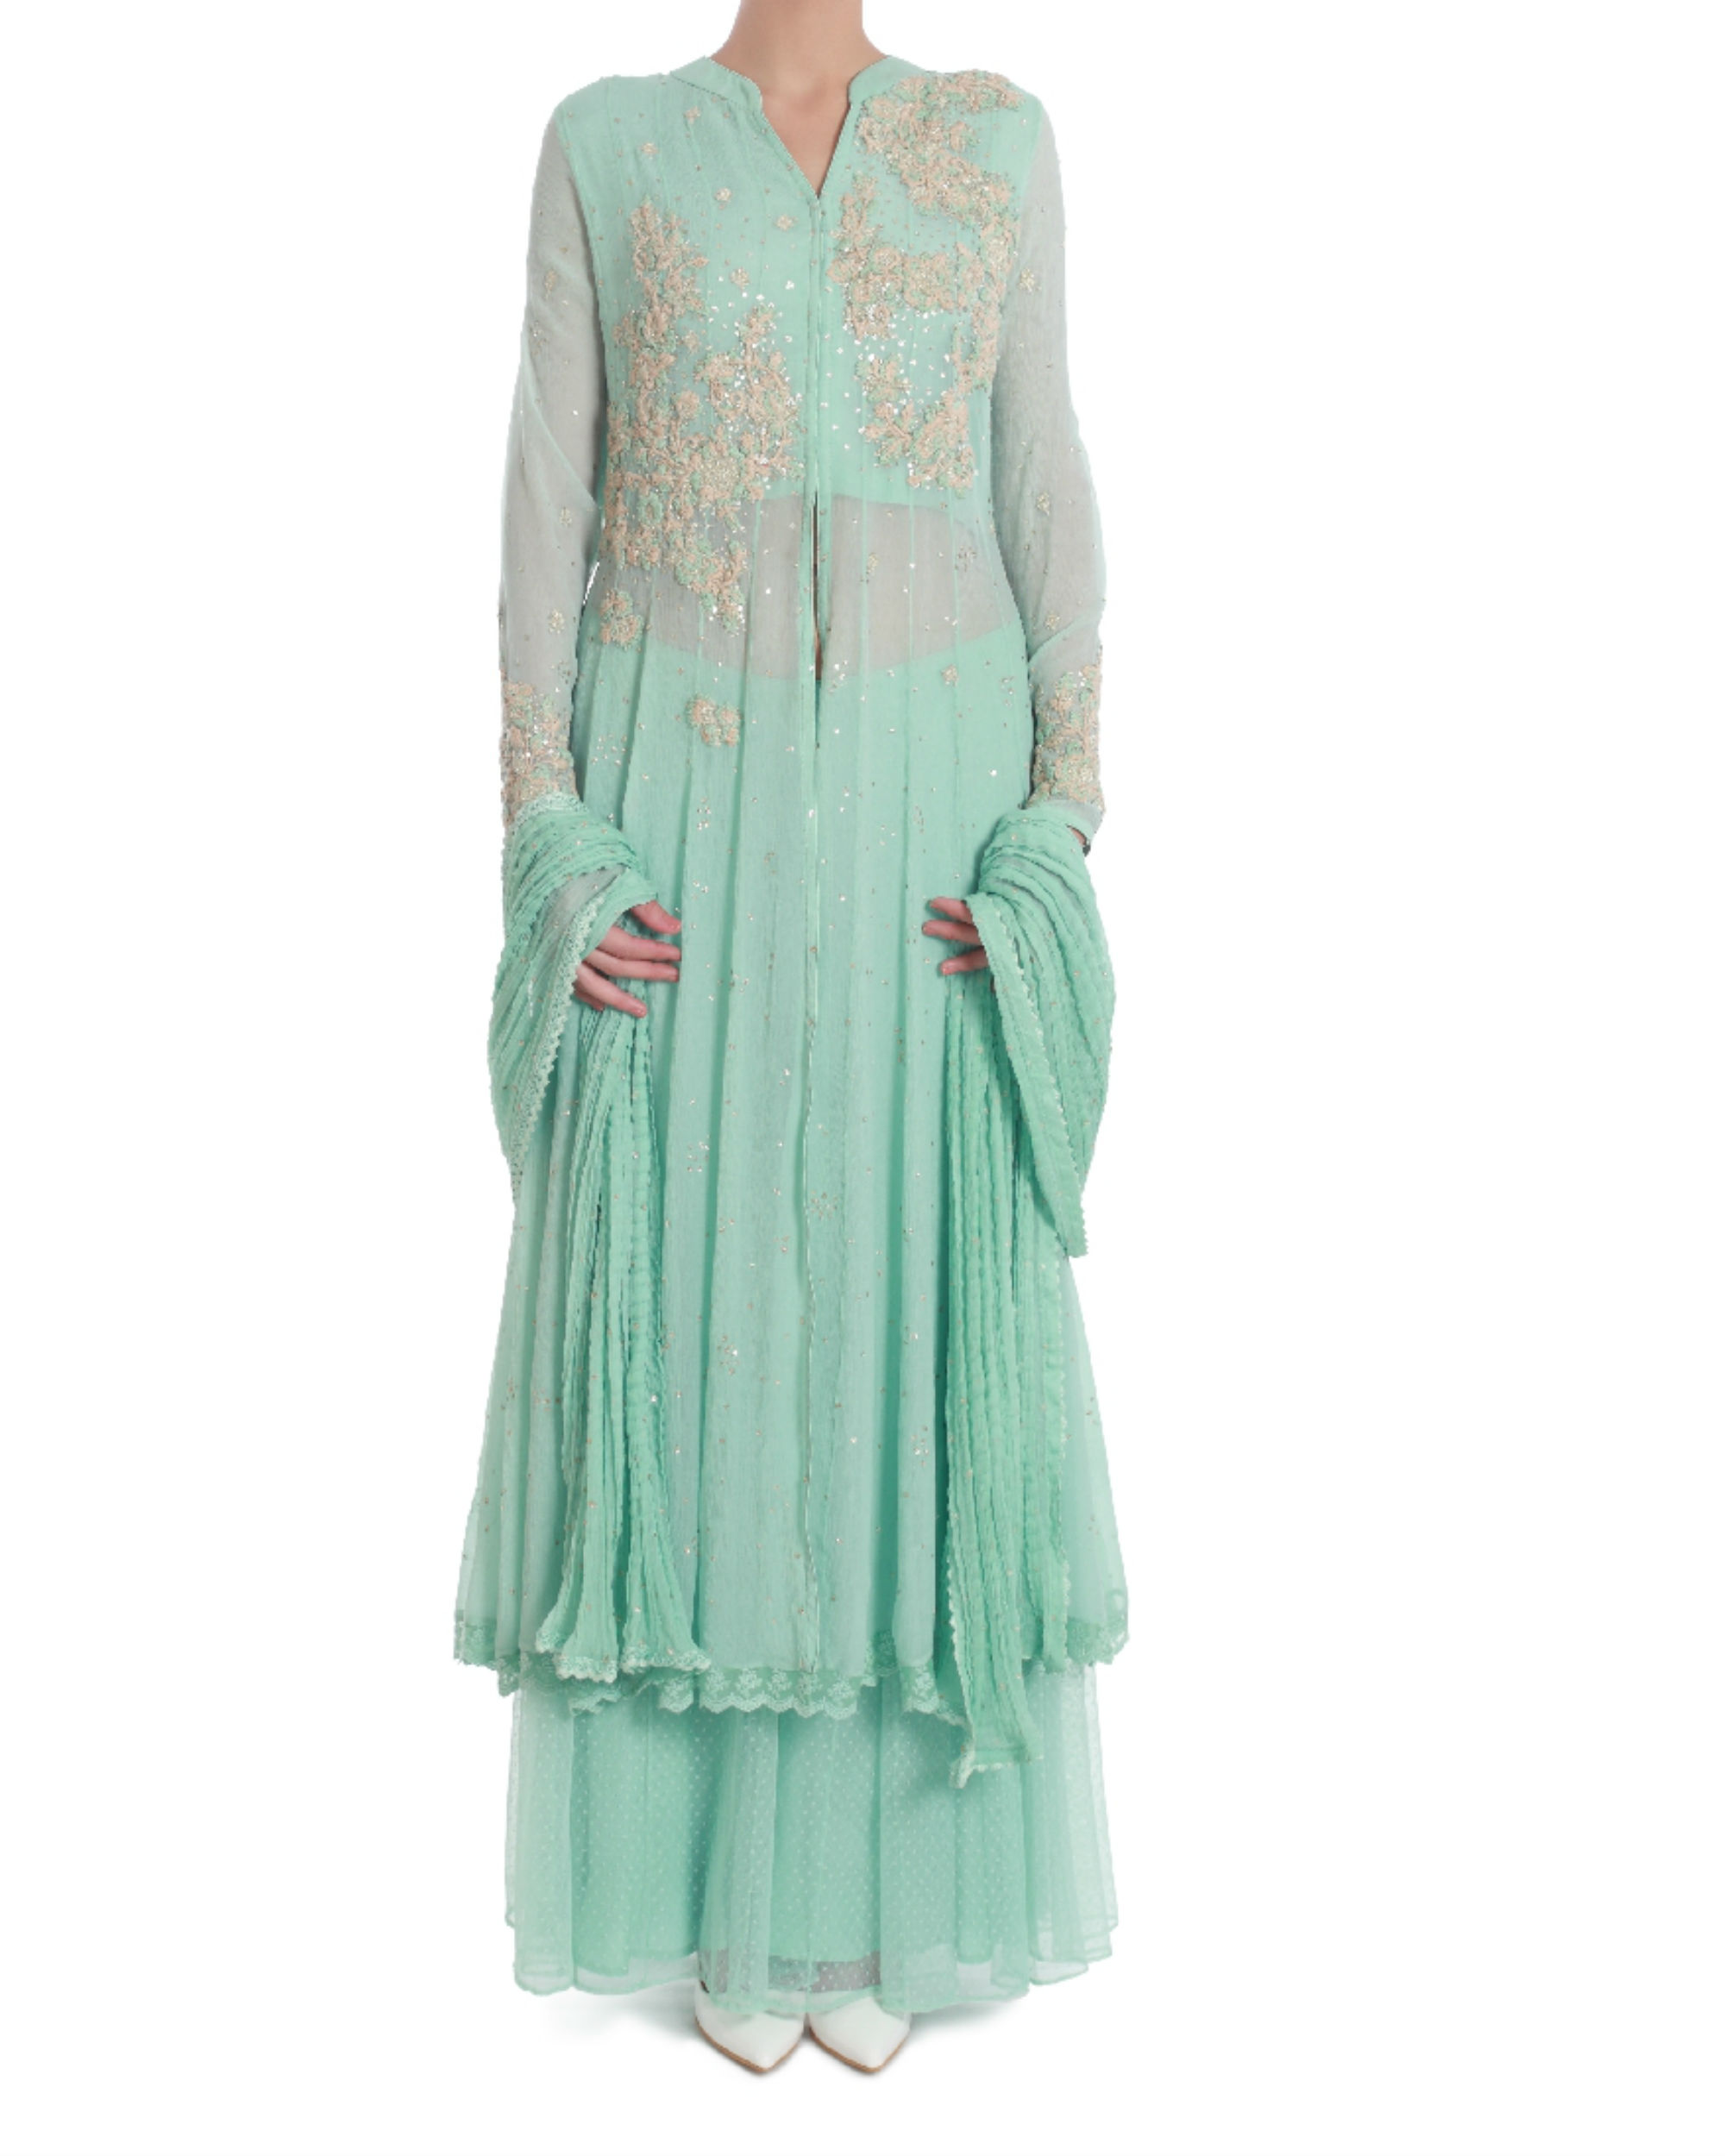 Madalena jose  kurta separates